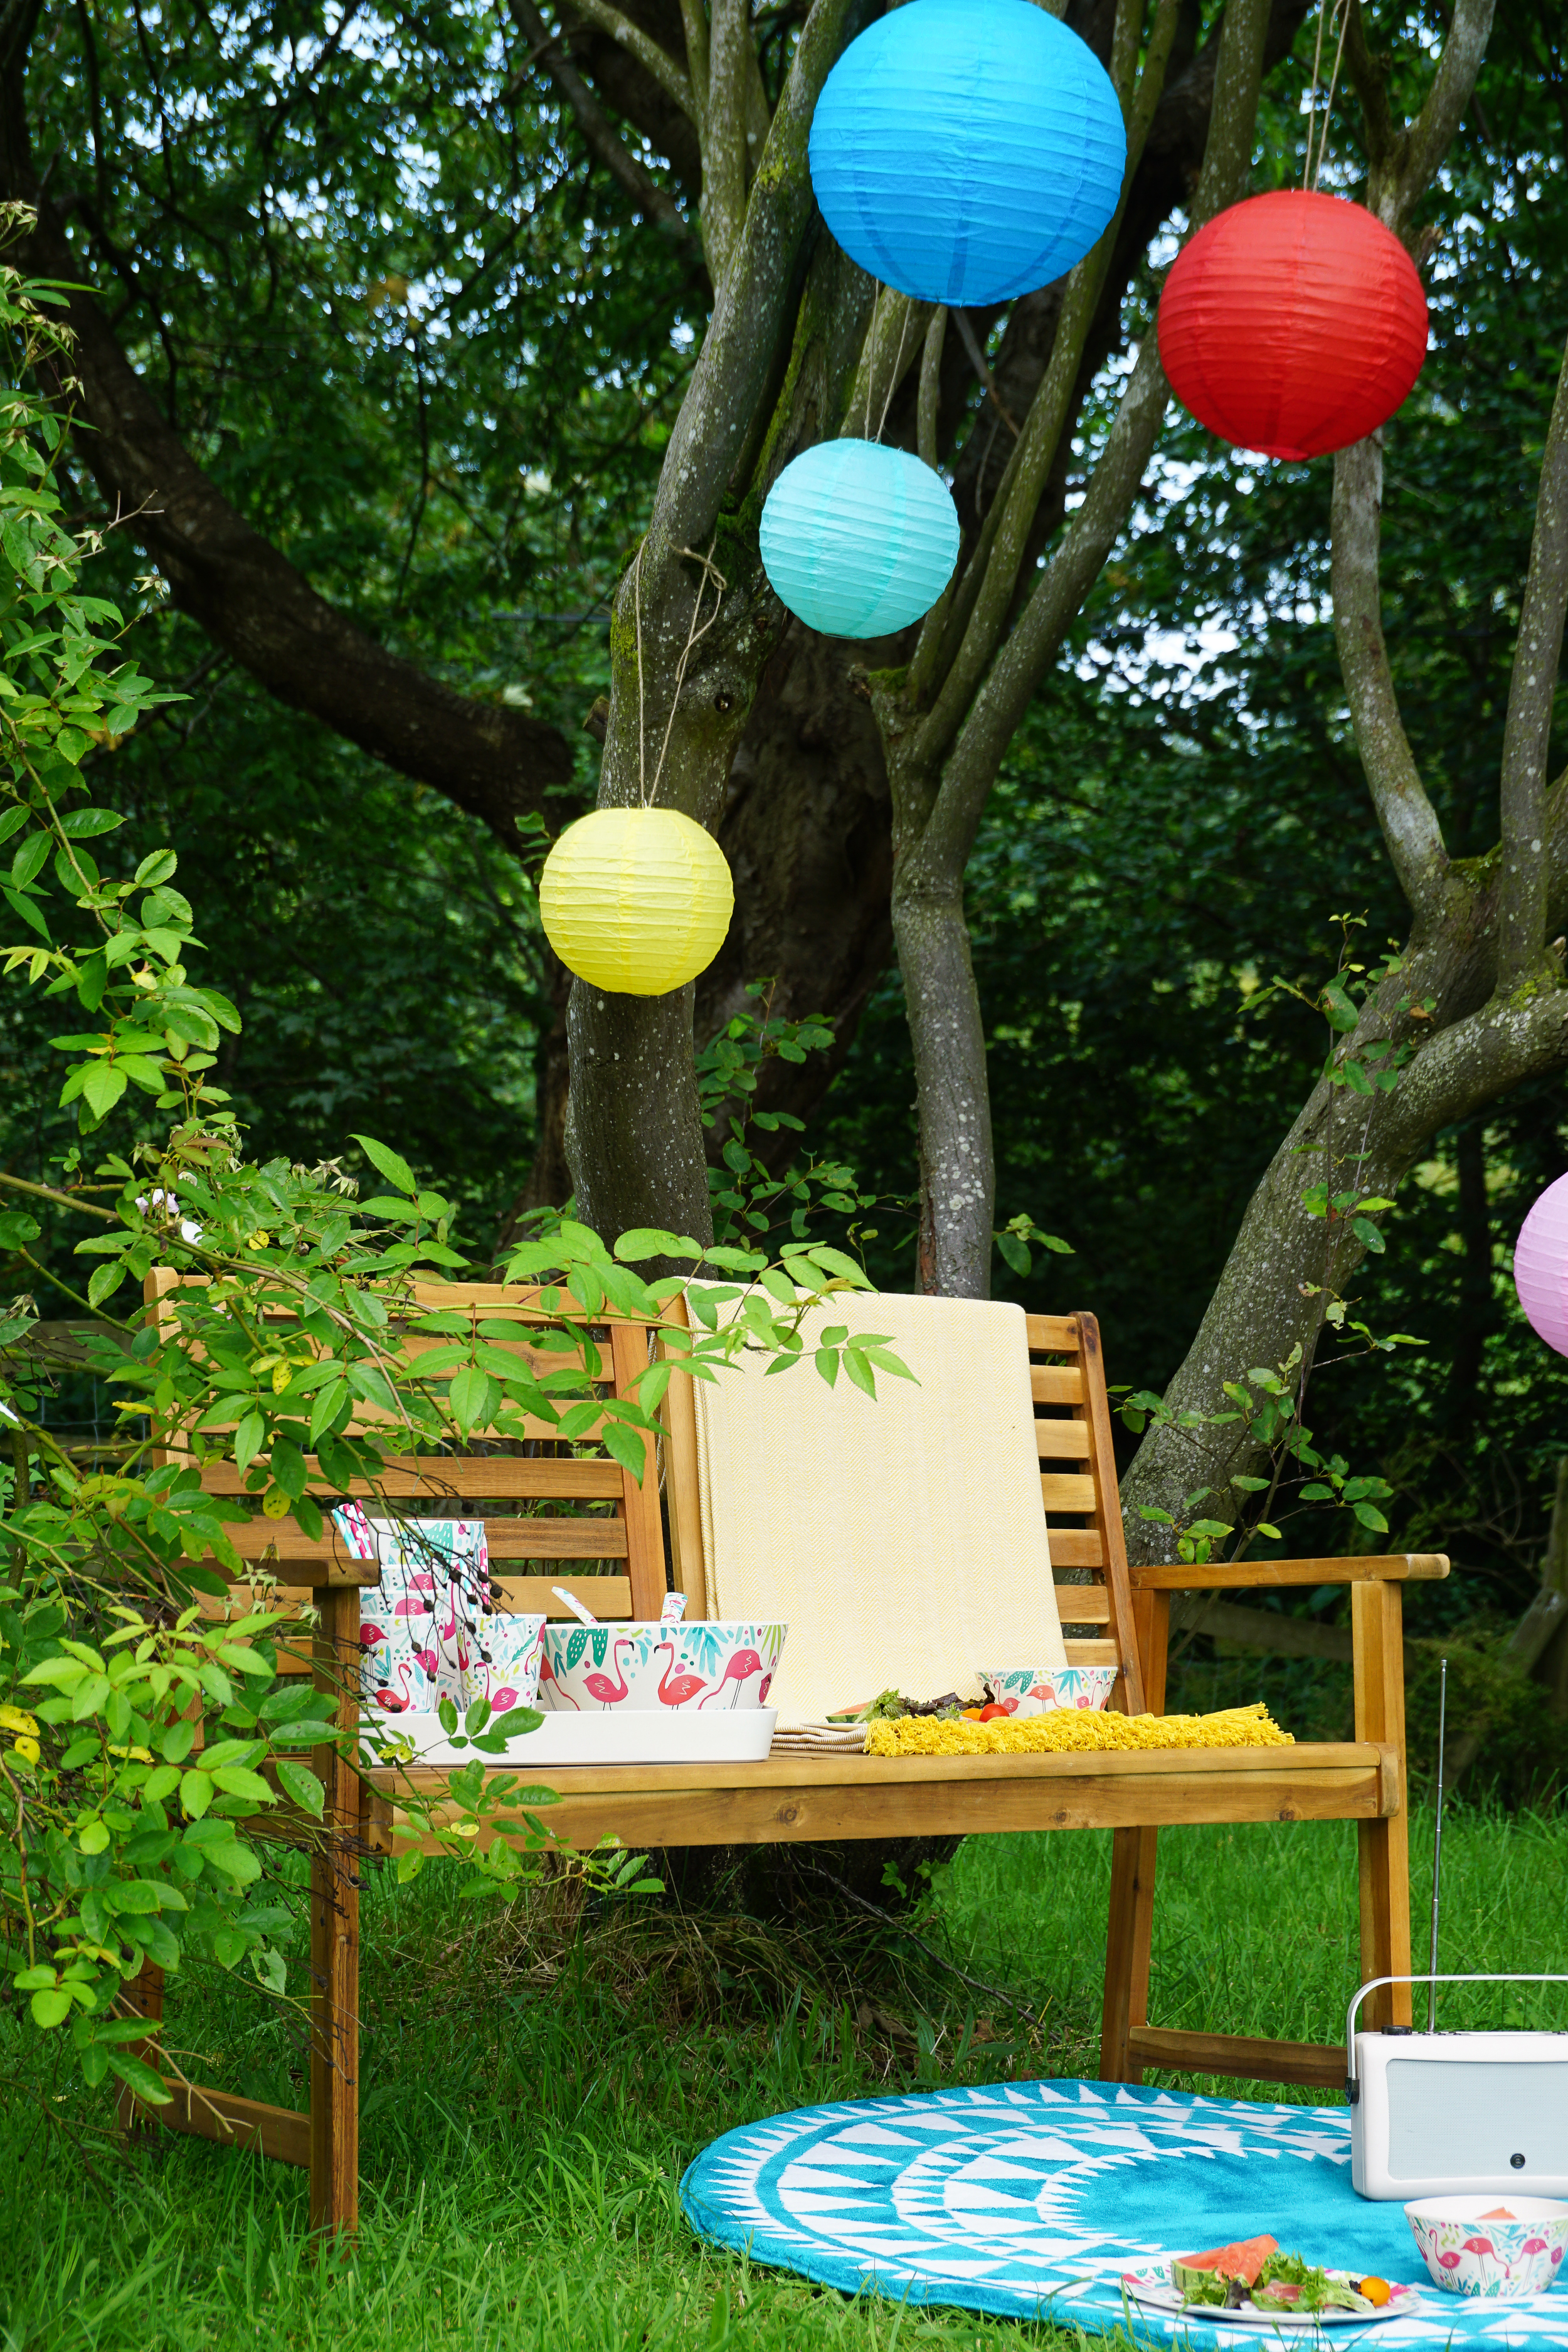 Creating happy holiday vibes at home and in the garden